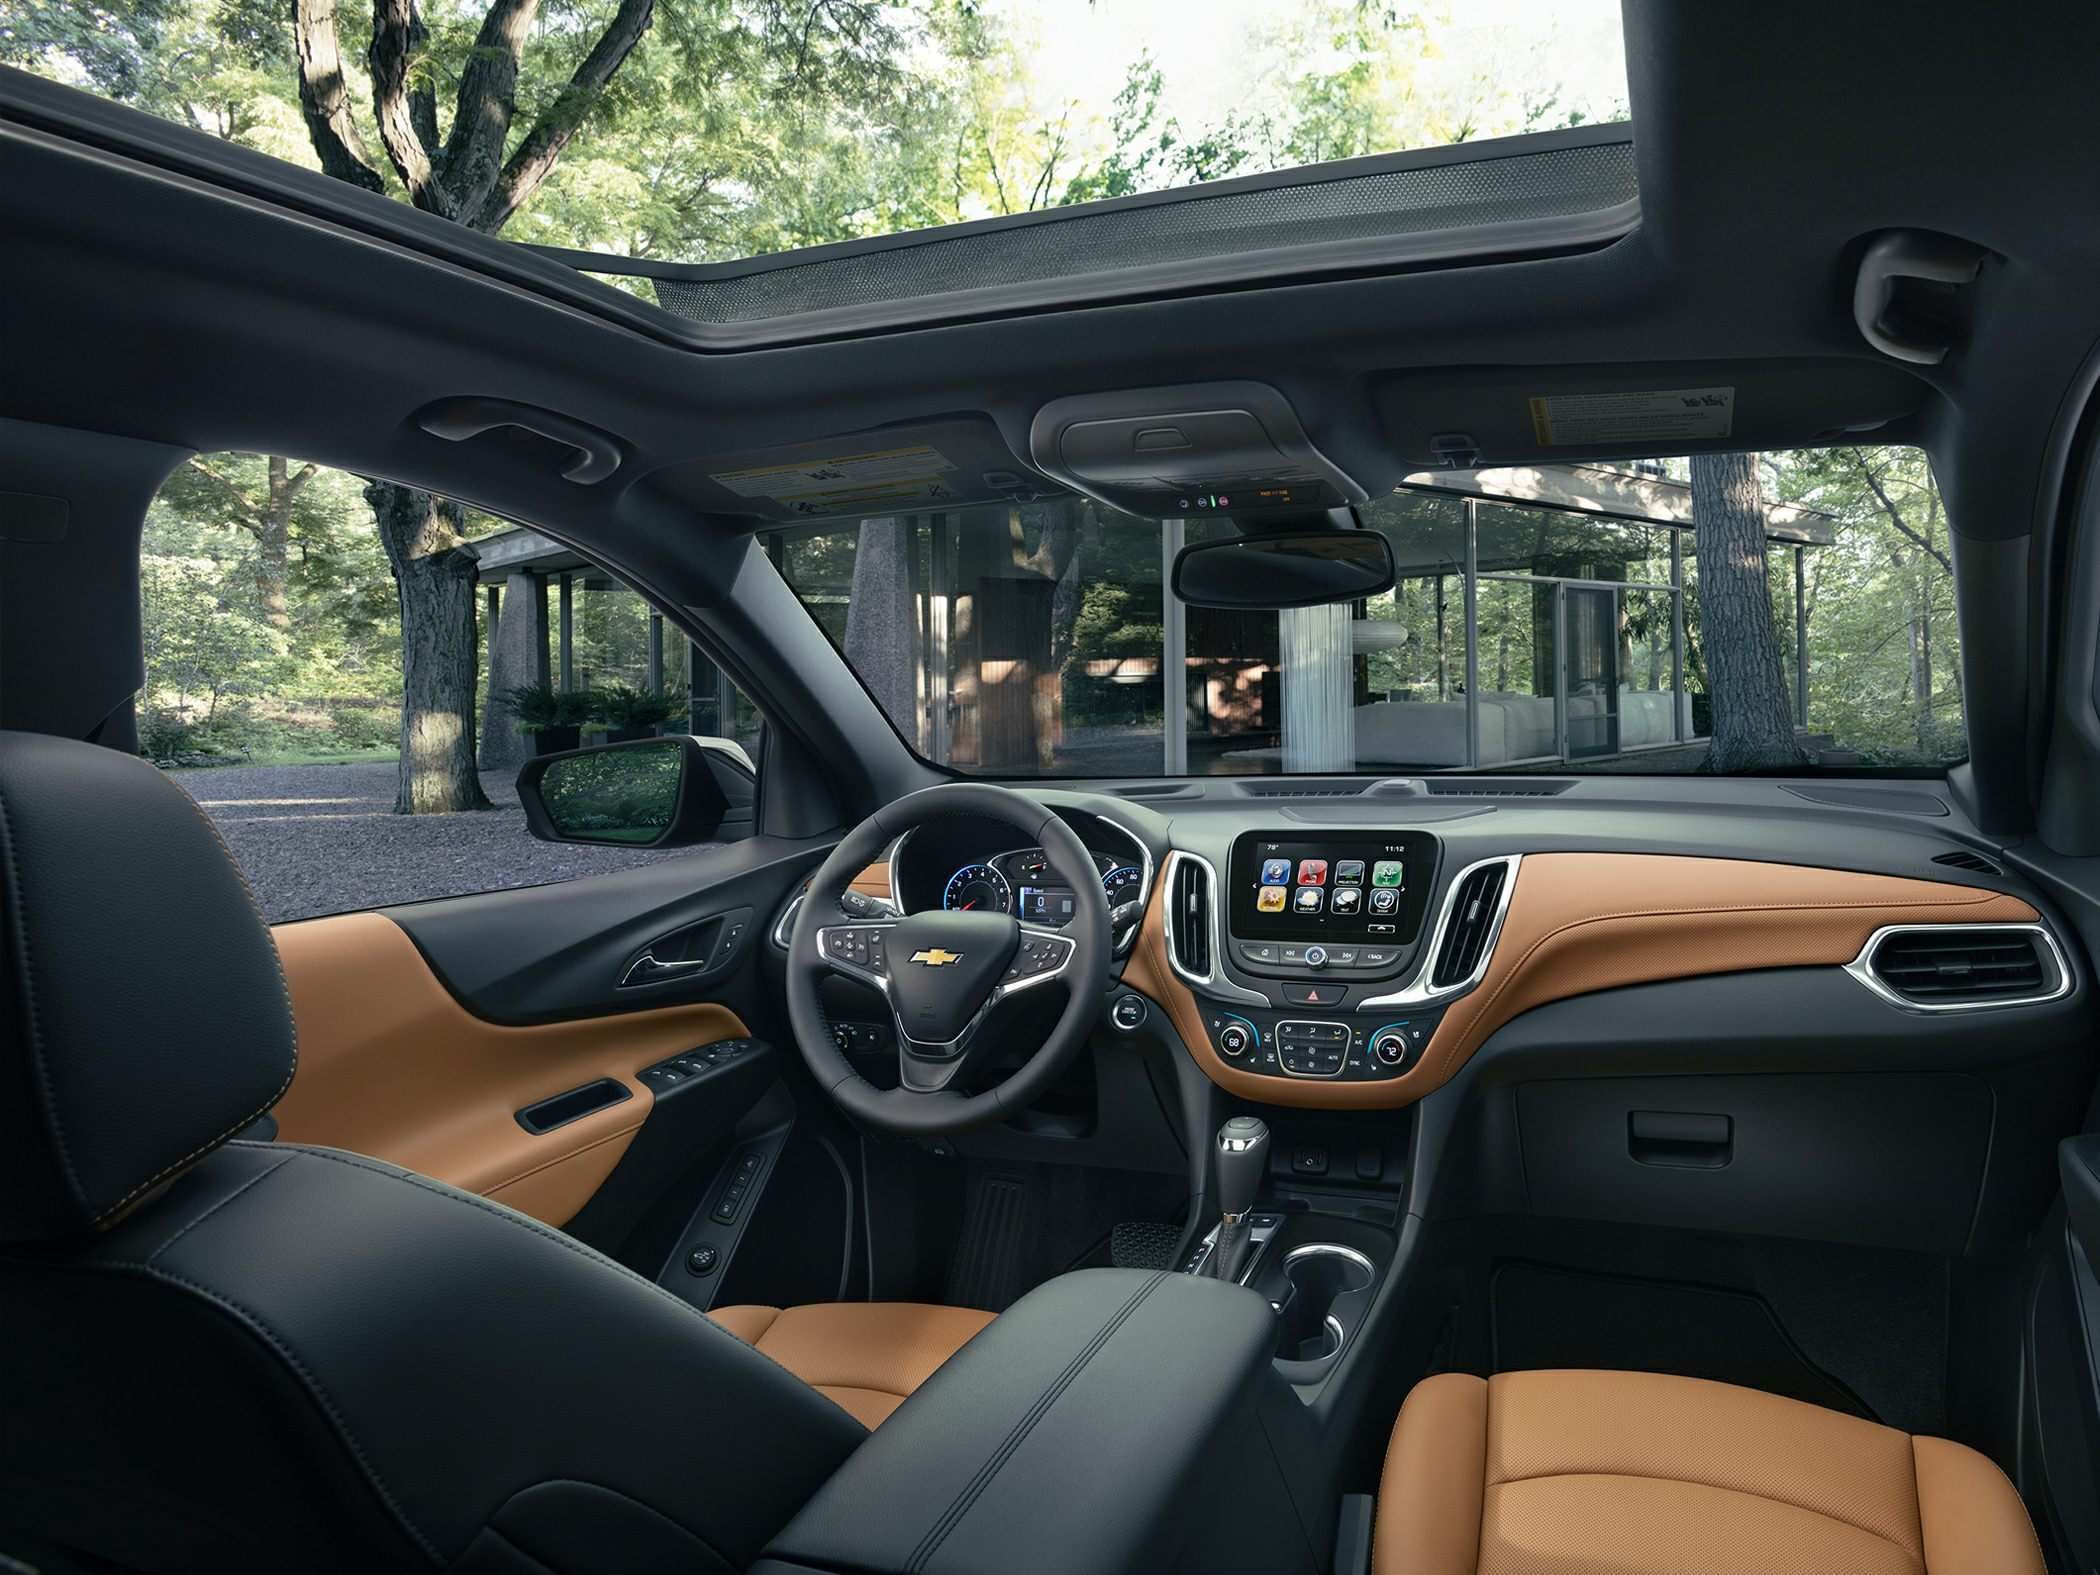 80 The 2020 All Chevy Equinox Price Design And Review